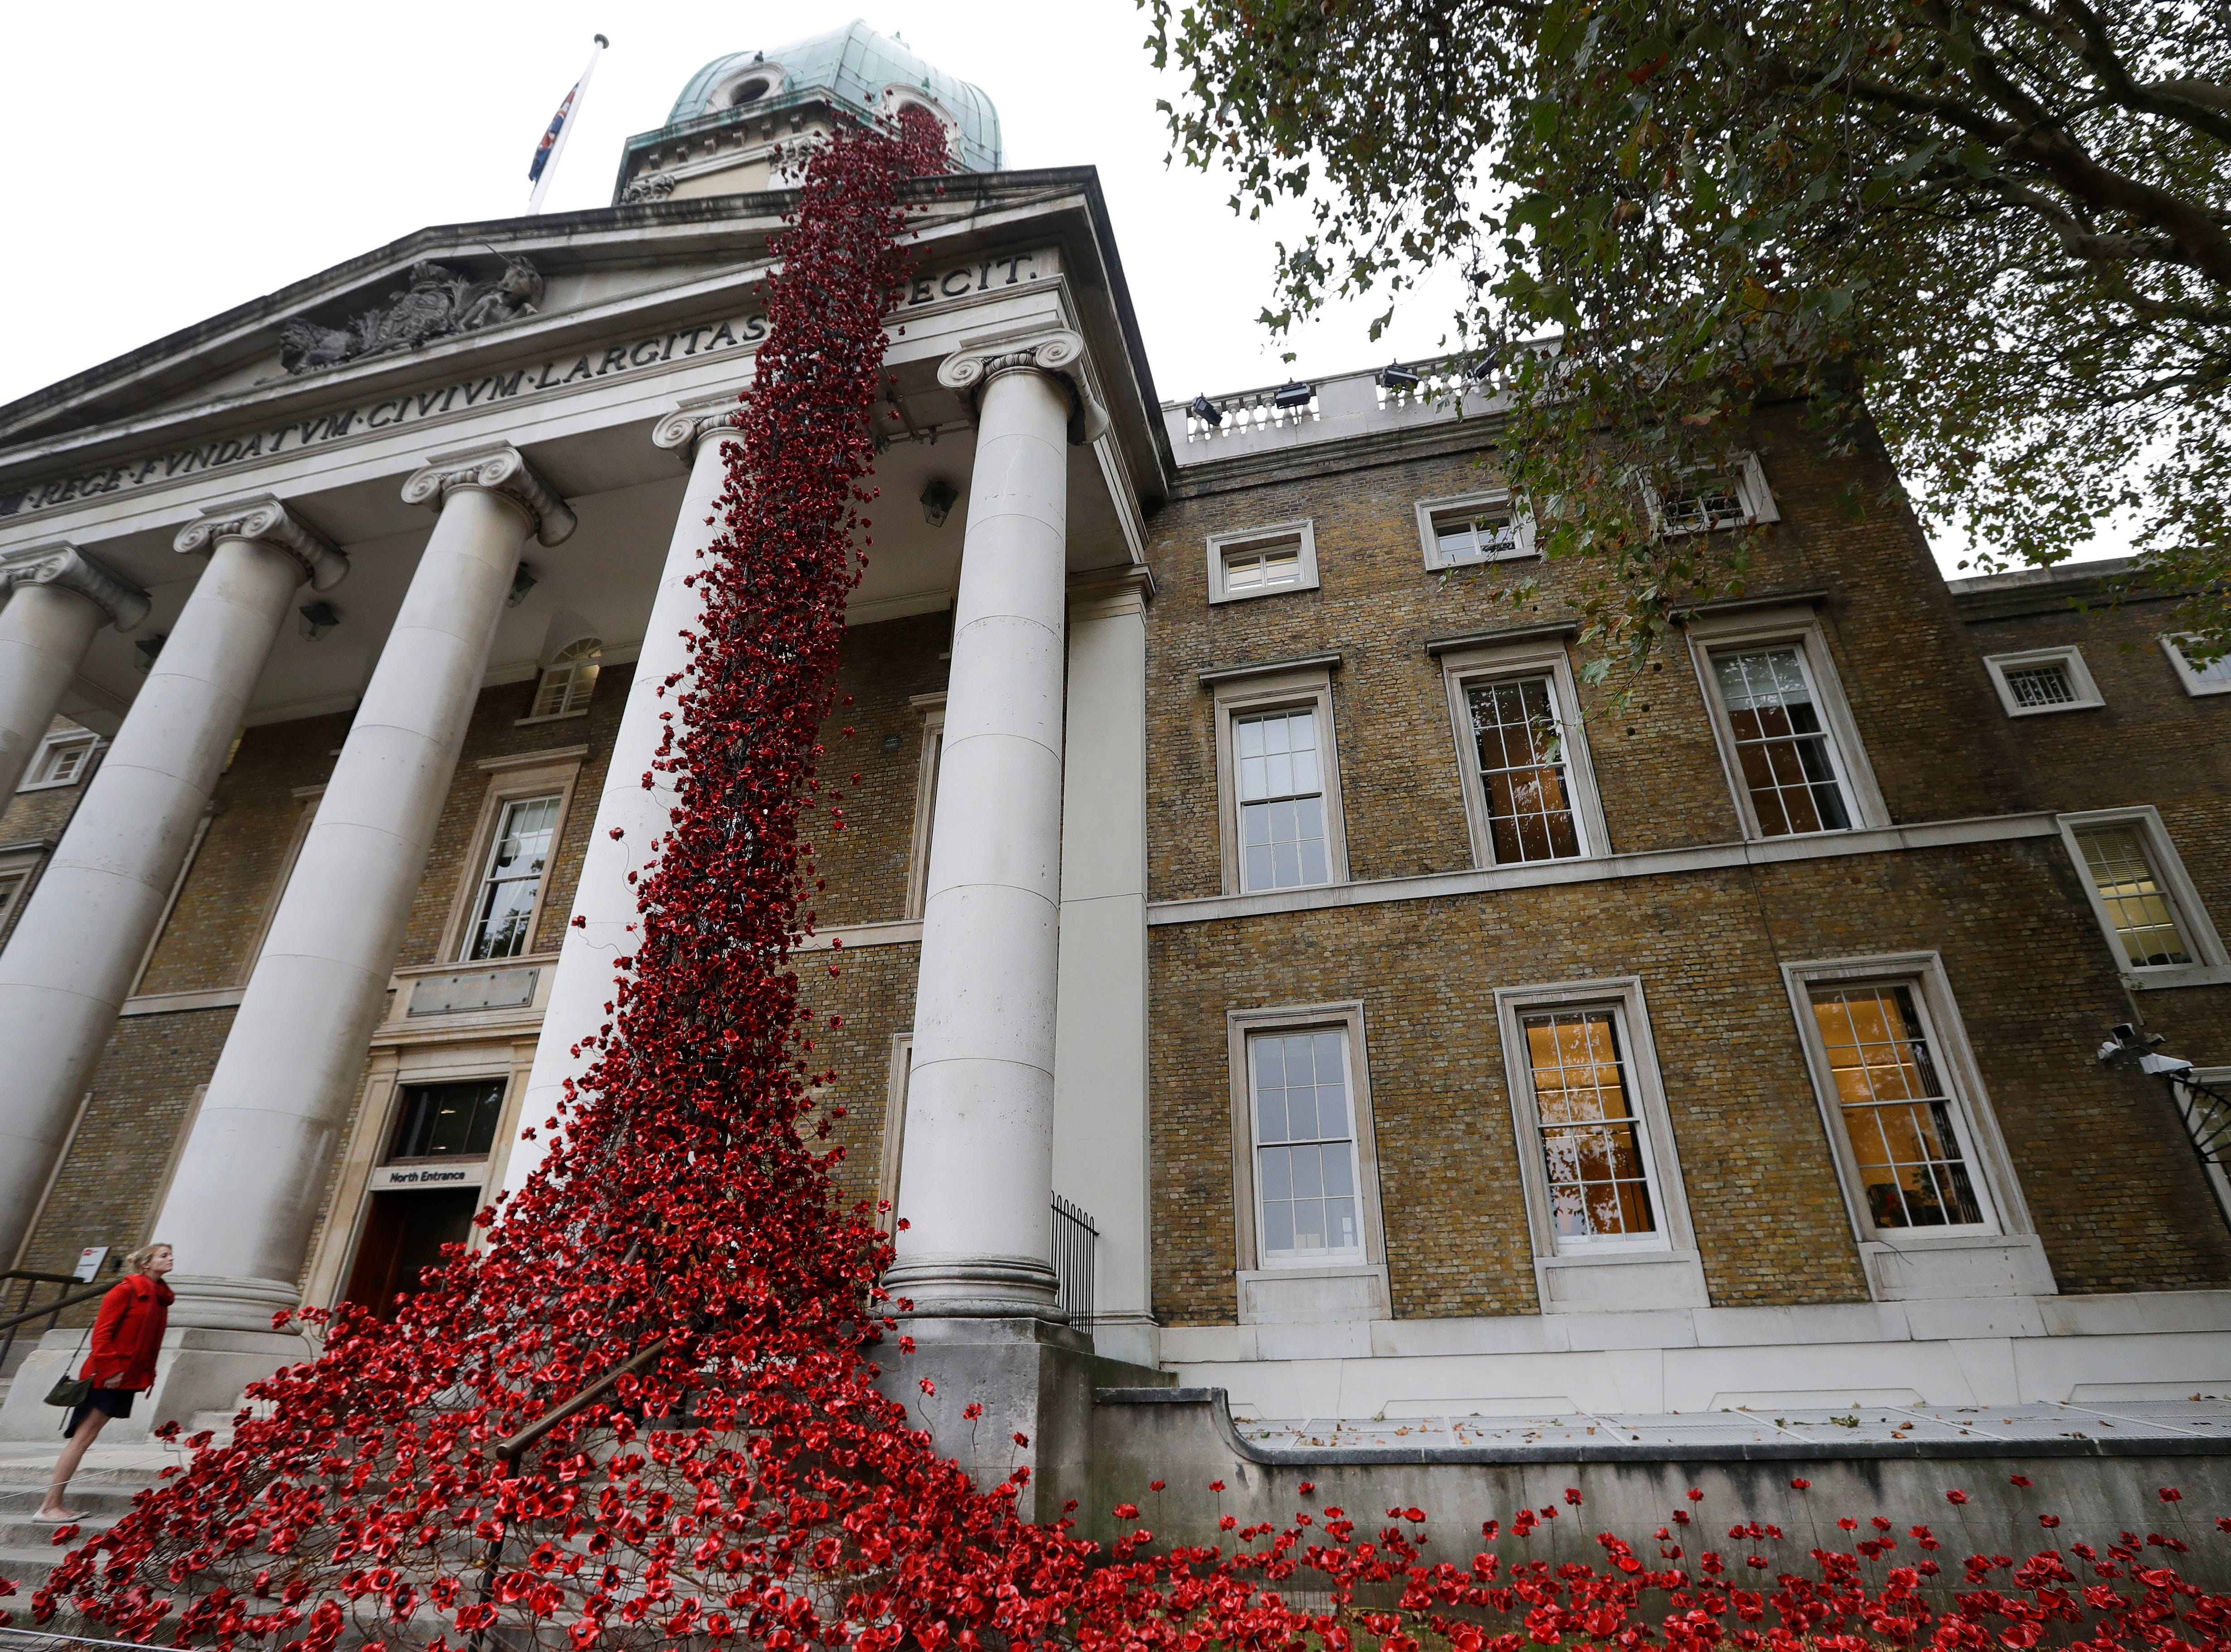 """A woman looks up toward the poppy sculpture """"Weeping Window,"""" by artist Paul Cummins and designer Tom Piper, at The Imperial War Museum in London, Thursday, Oct. 4, 2018."""